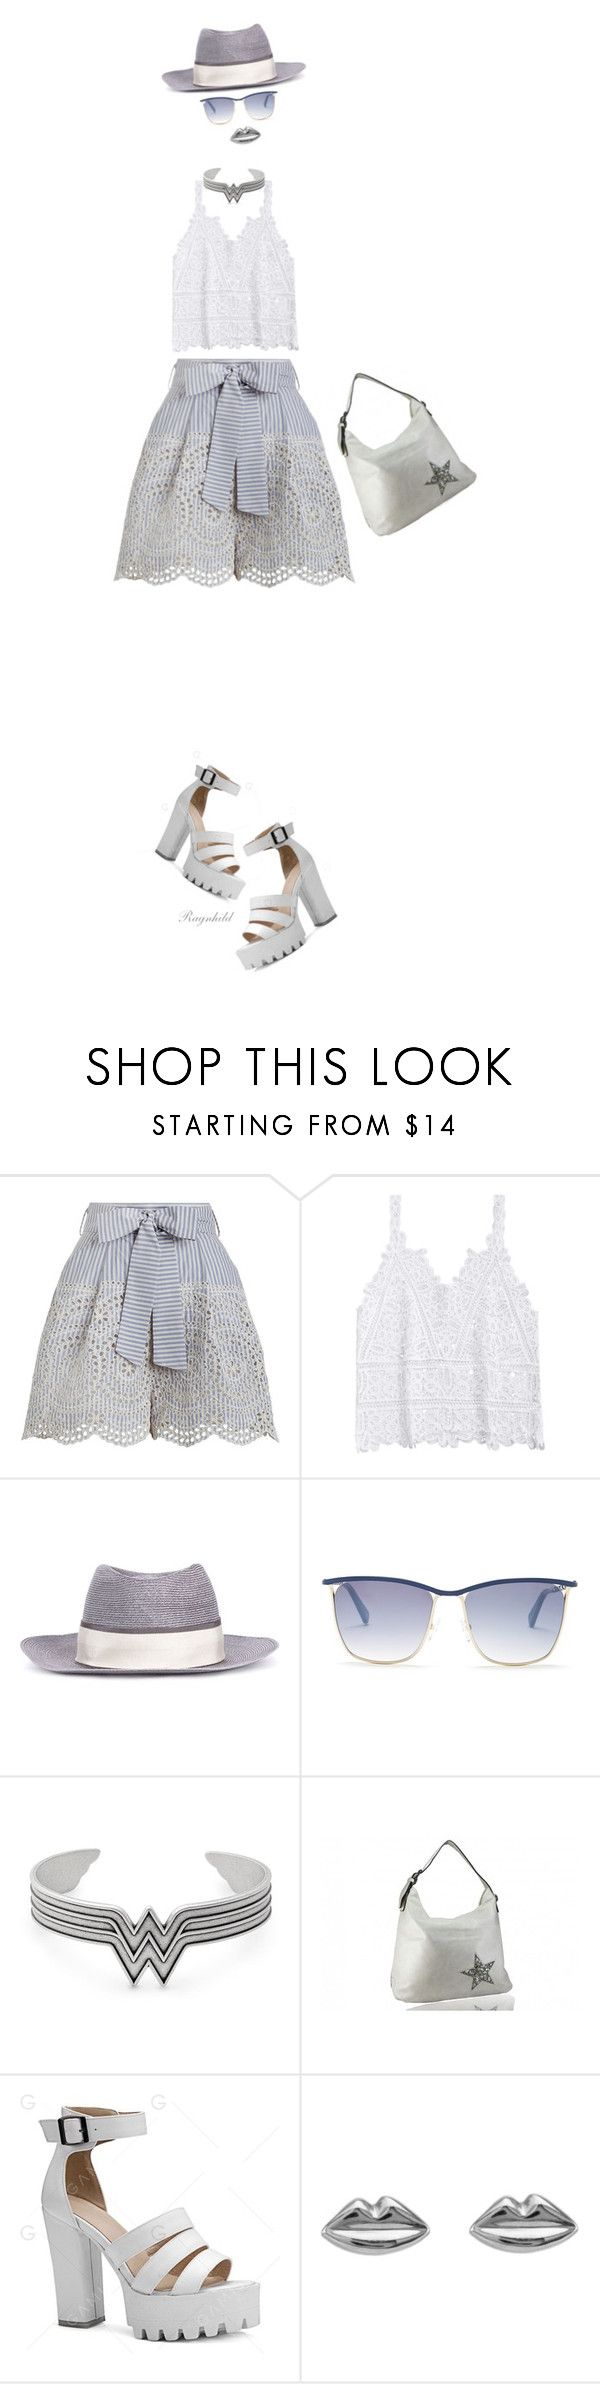 """""""Invisible Dolls in Shorts"""" by ragnh-mjos ❤ liked on Polyvore featuring Zimmermann, Maison Michel, Balmain, Alex and Ani and Kozminka"""